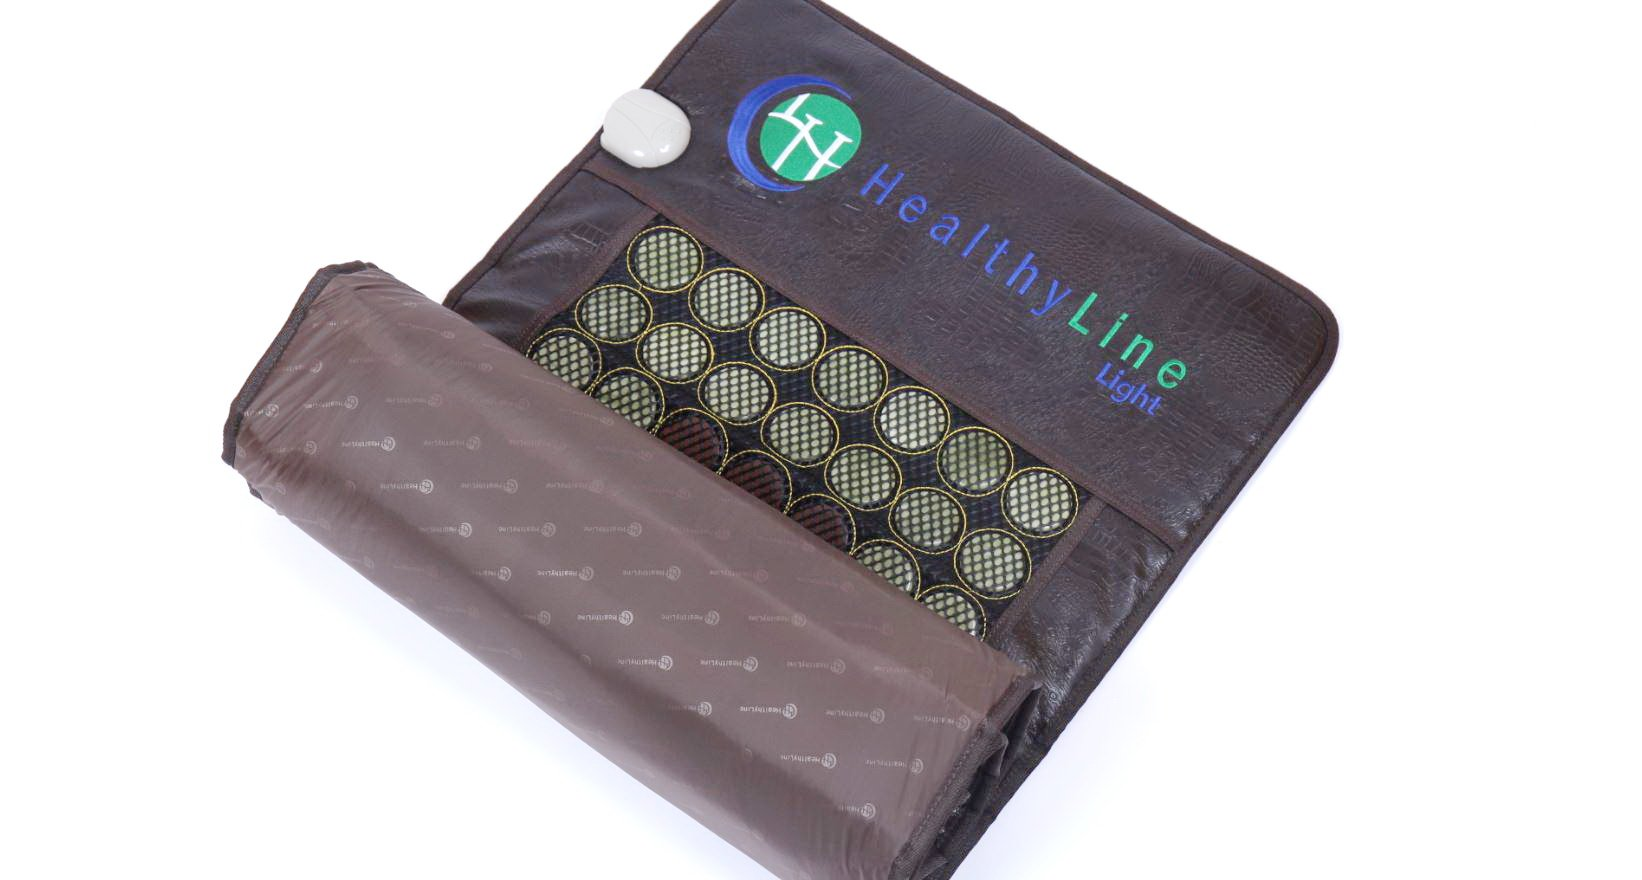 HealthyLine Far Infrared Heating Mat 72''x24'' Relieves Sore Muscles, Joints, Arthritis Natural Jade & Tourmaline with Negative Ions InfraMat Pro Most Flexible Model-Easy to roll-up(Light & Firm) by HealthyLine (Image #4)